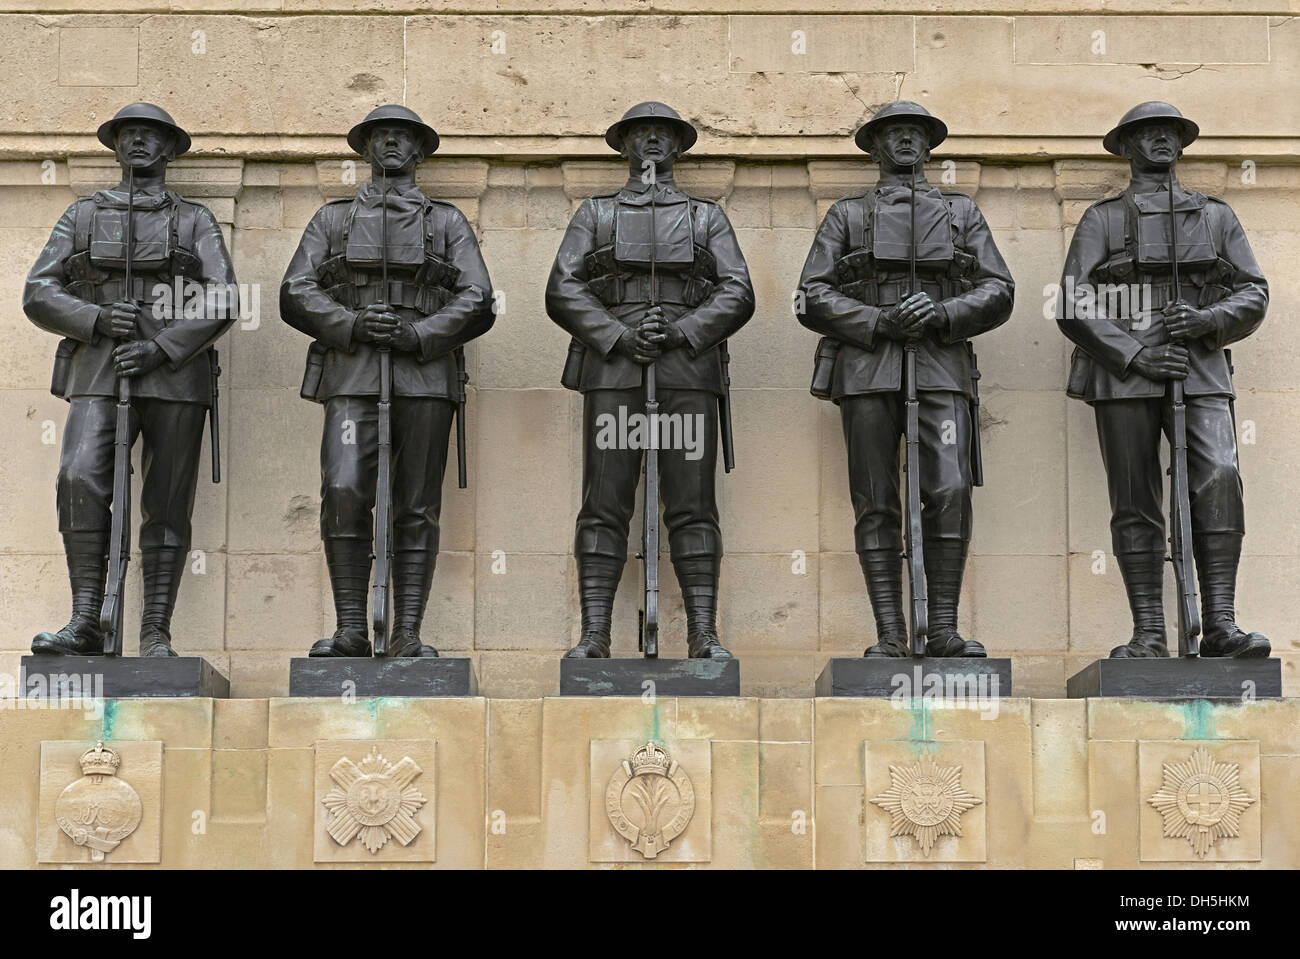 The Guards Memorial, Horse Guards Parade, London, UK. A First World War Memorial to the Fallen of the Guards Division. - Stock Image